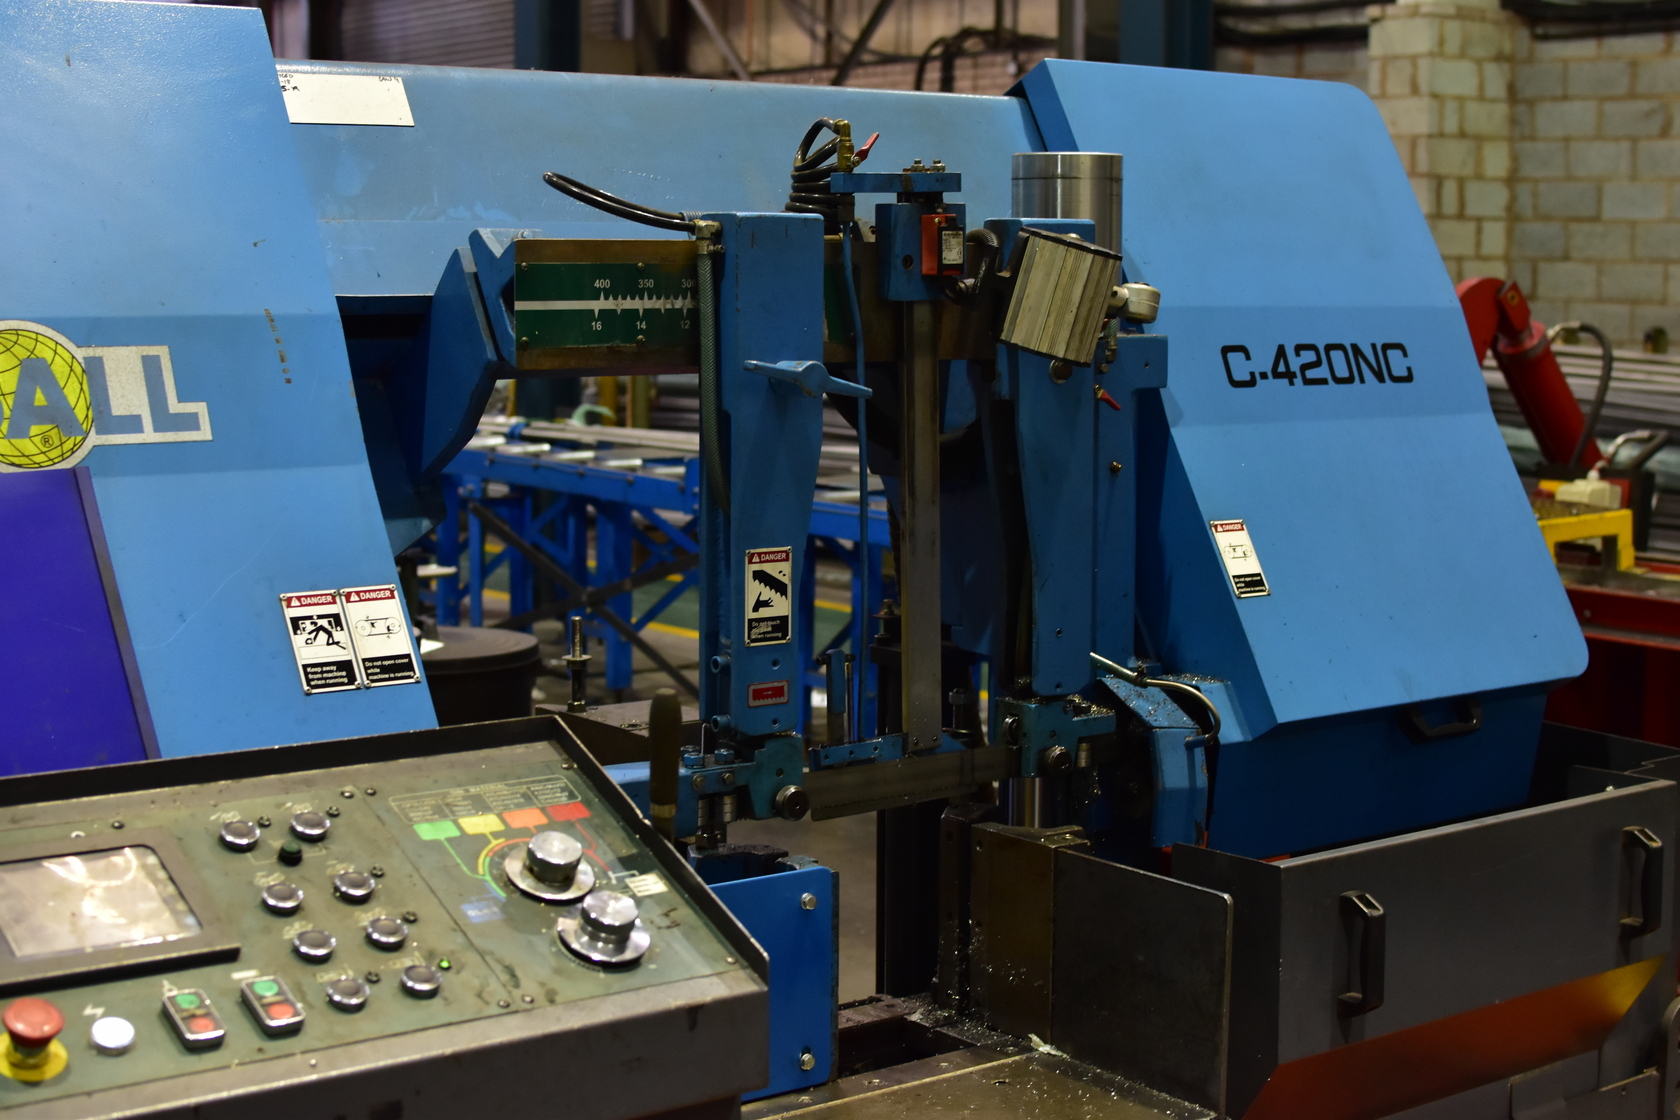 West Brom Band Saw Large